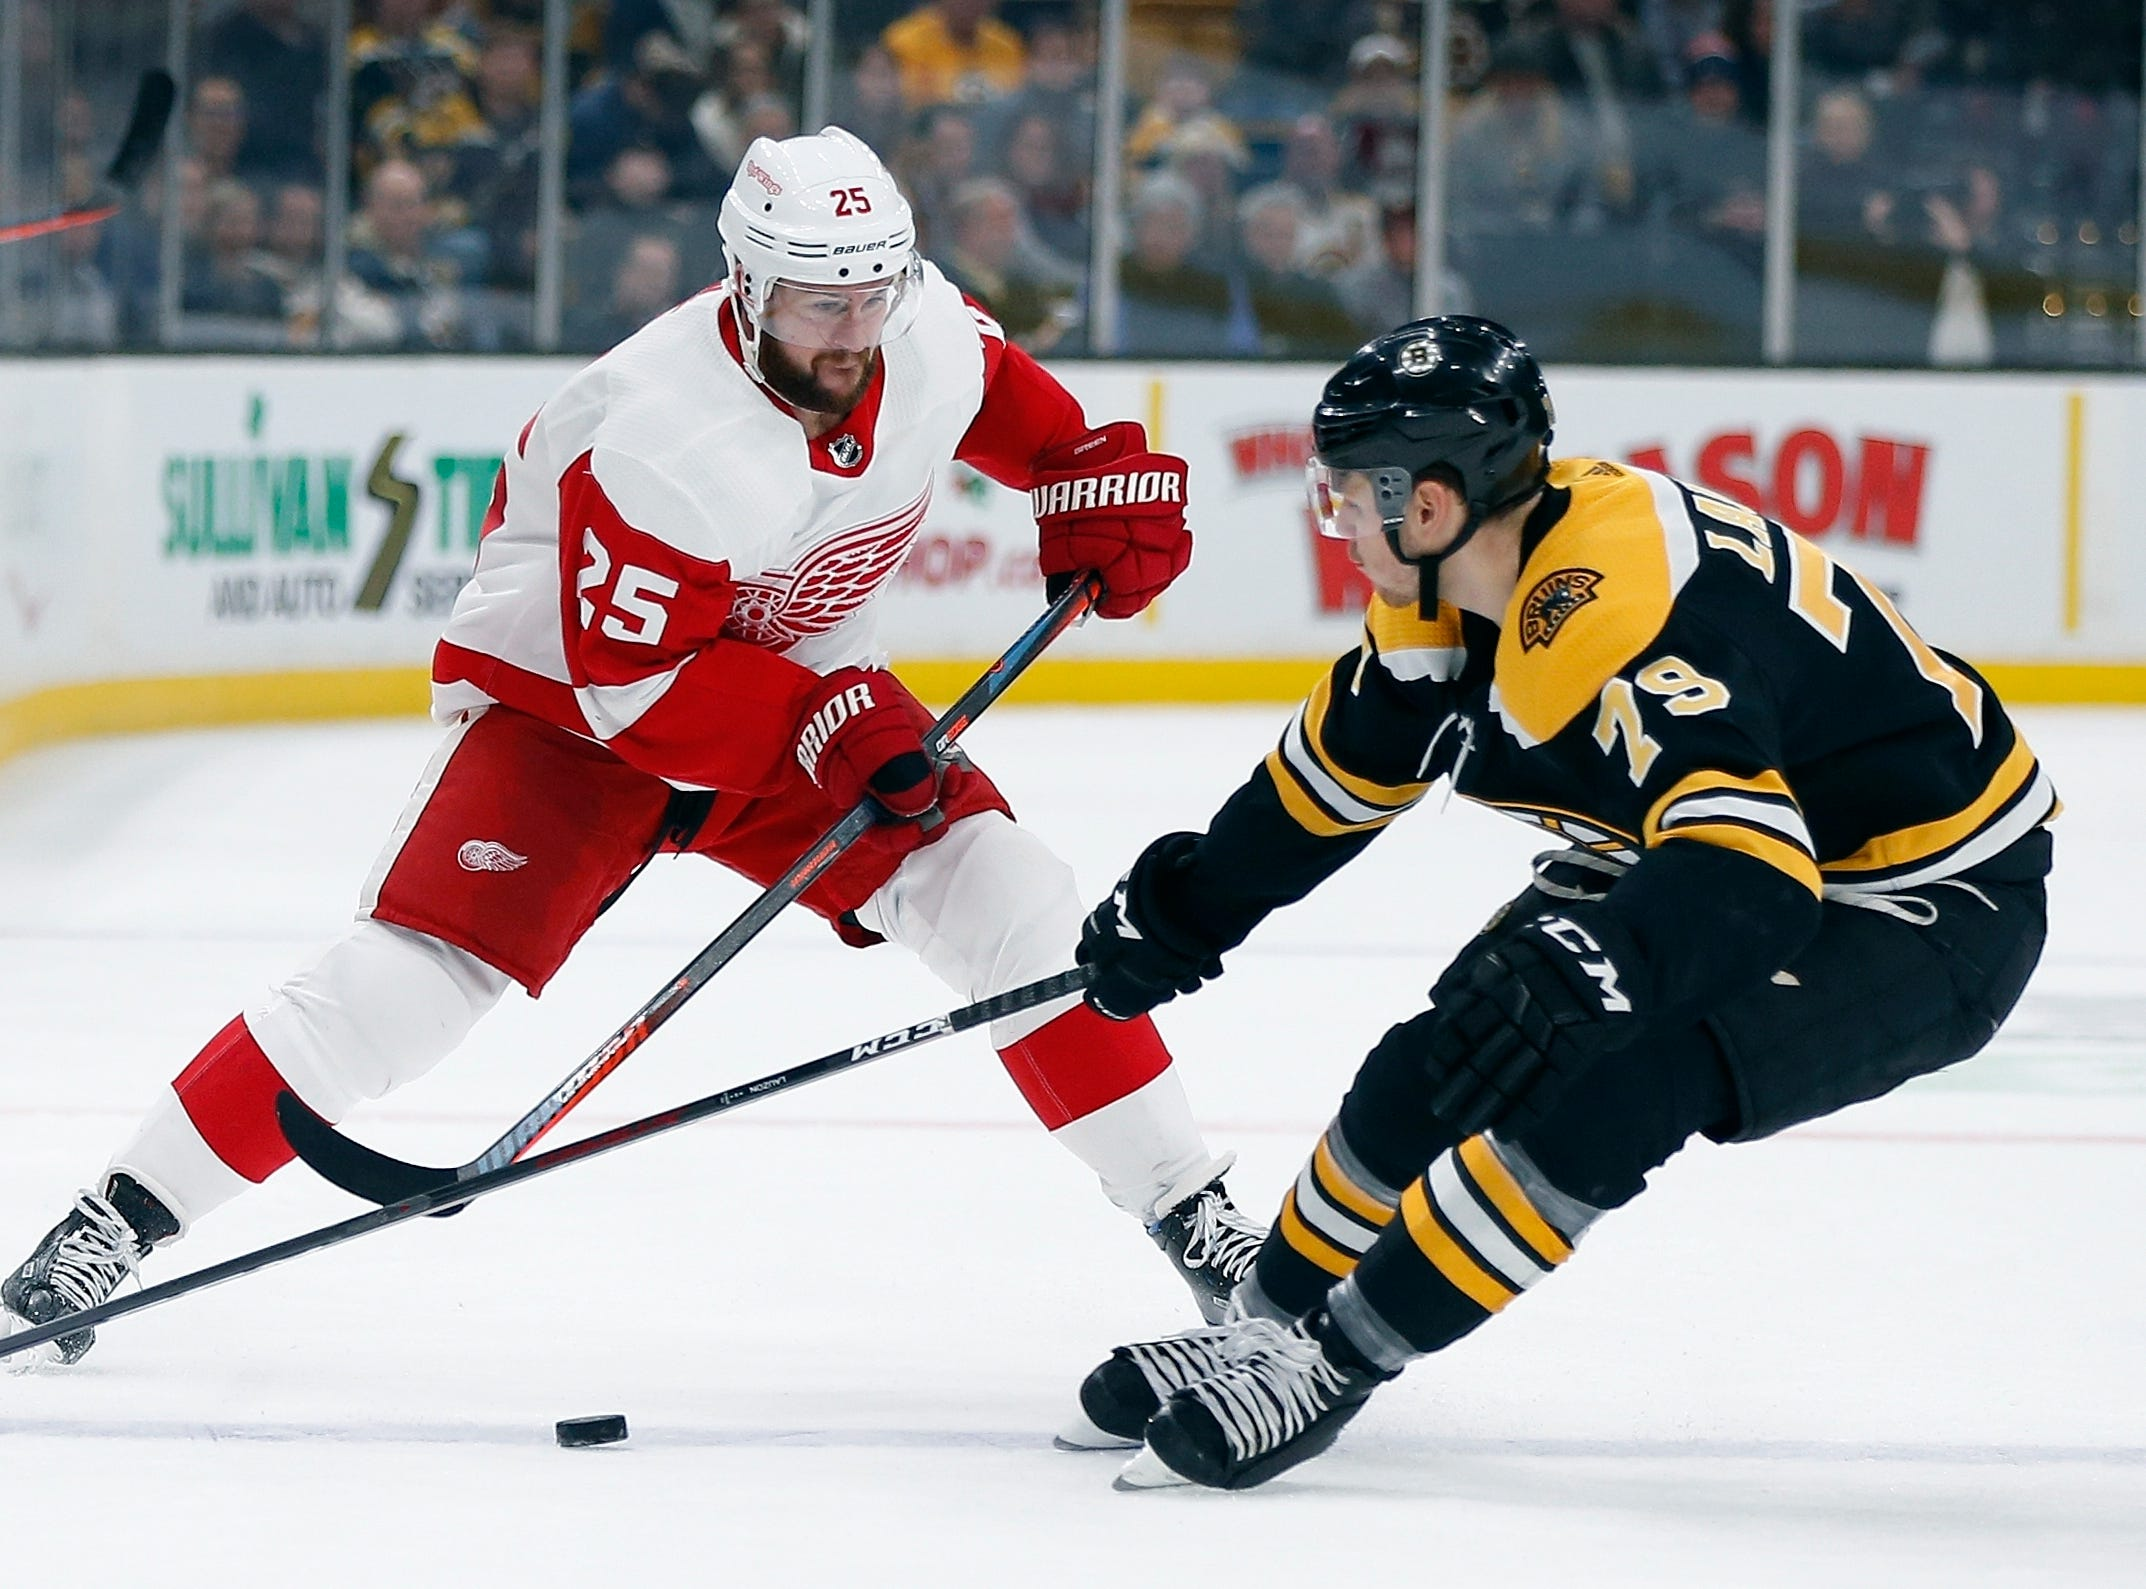 Detroit Red Wings' Mike Green (25) and Boston Bruins' Jeremy Lauzon (79) battle for the puck during the first period.